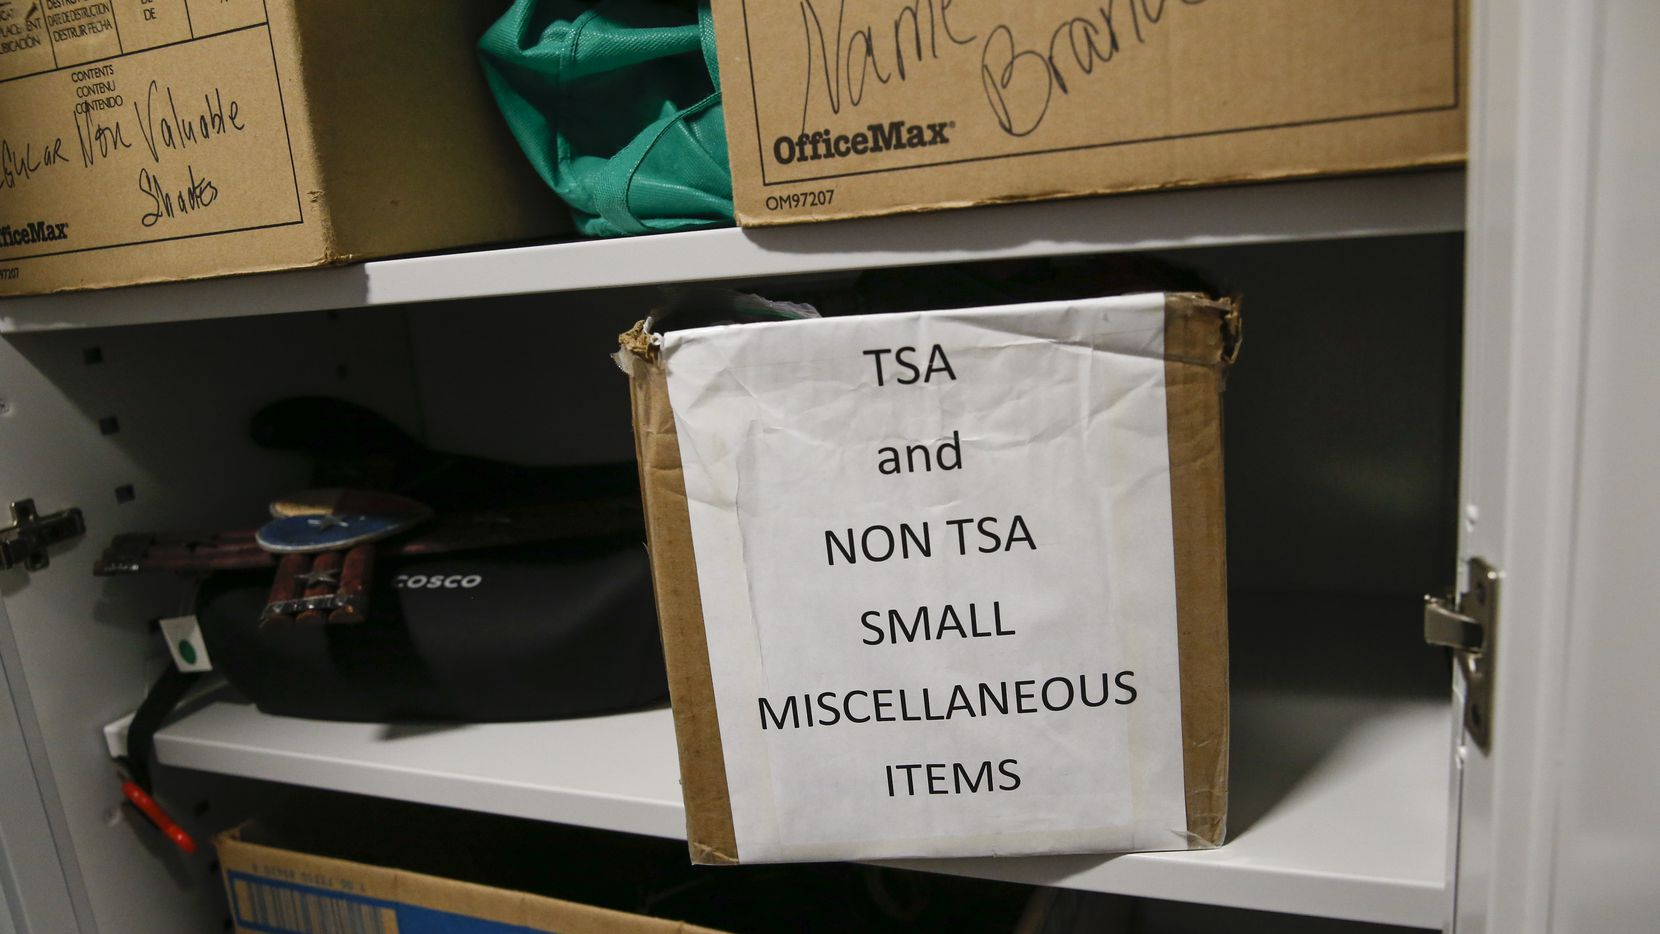 Items line the shelves of the lost and found office at Dallas Love Field.